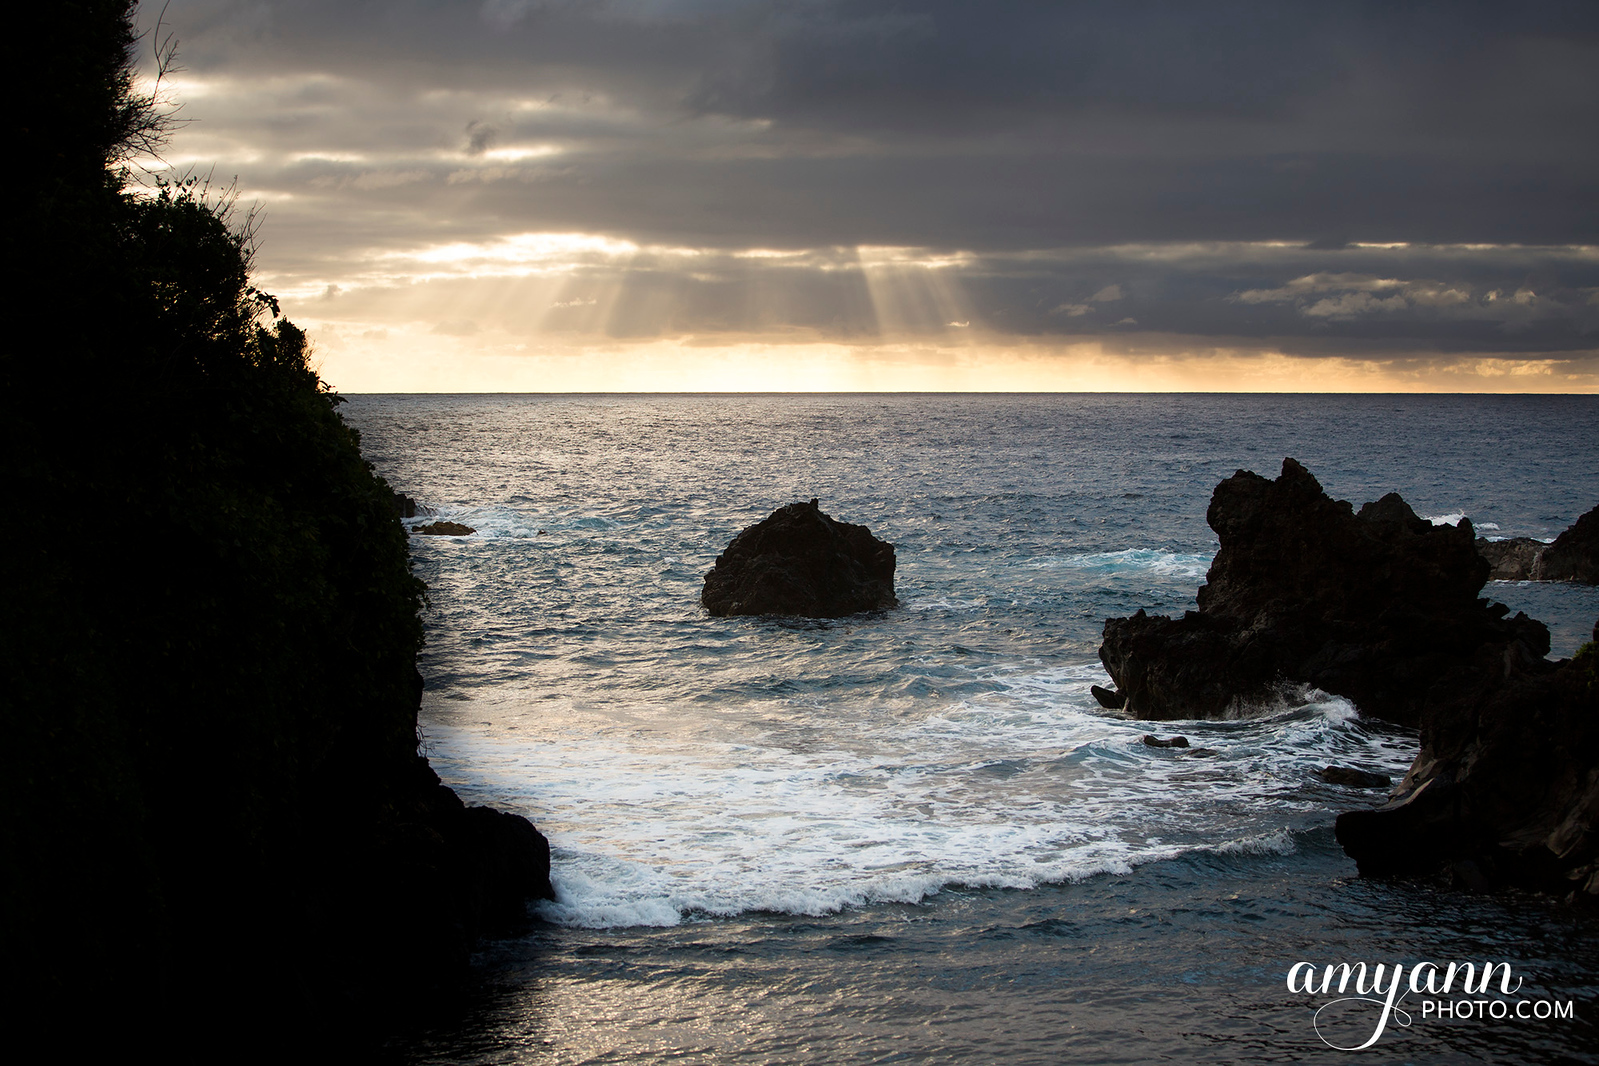 hawaii_amyannphoto_47